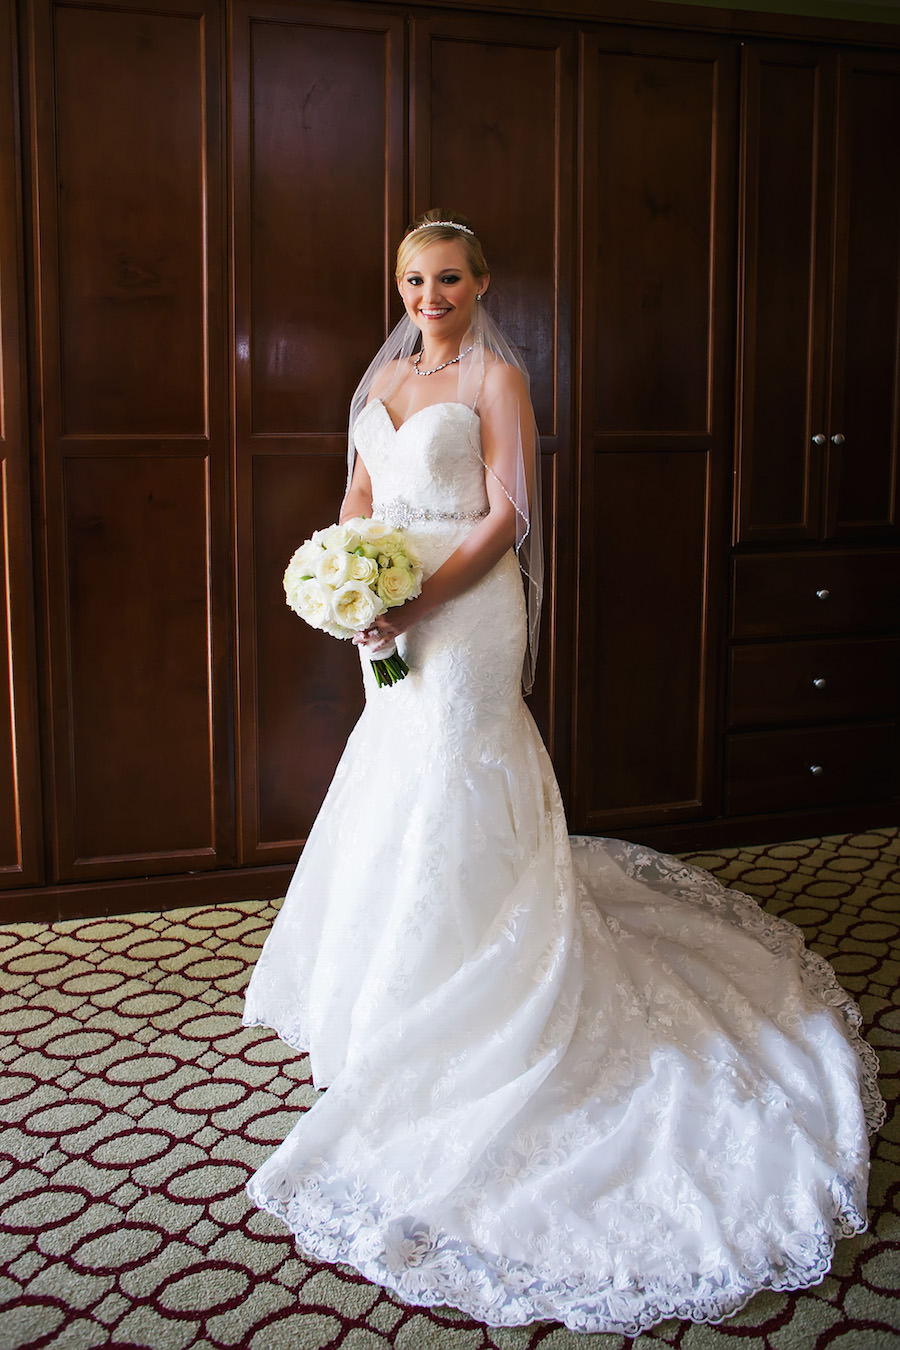 Bridal Wedding Portrait in Strapless, White Lace Allure Wedding Dress with Ivory Rose Wedding Bouquet | St. Petersburg Wedding Photographer Limelight Photography